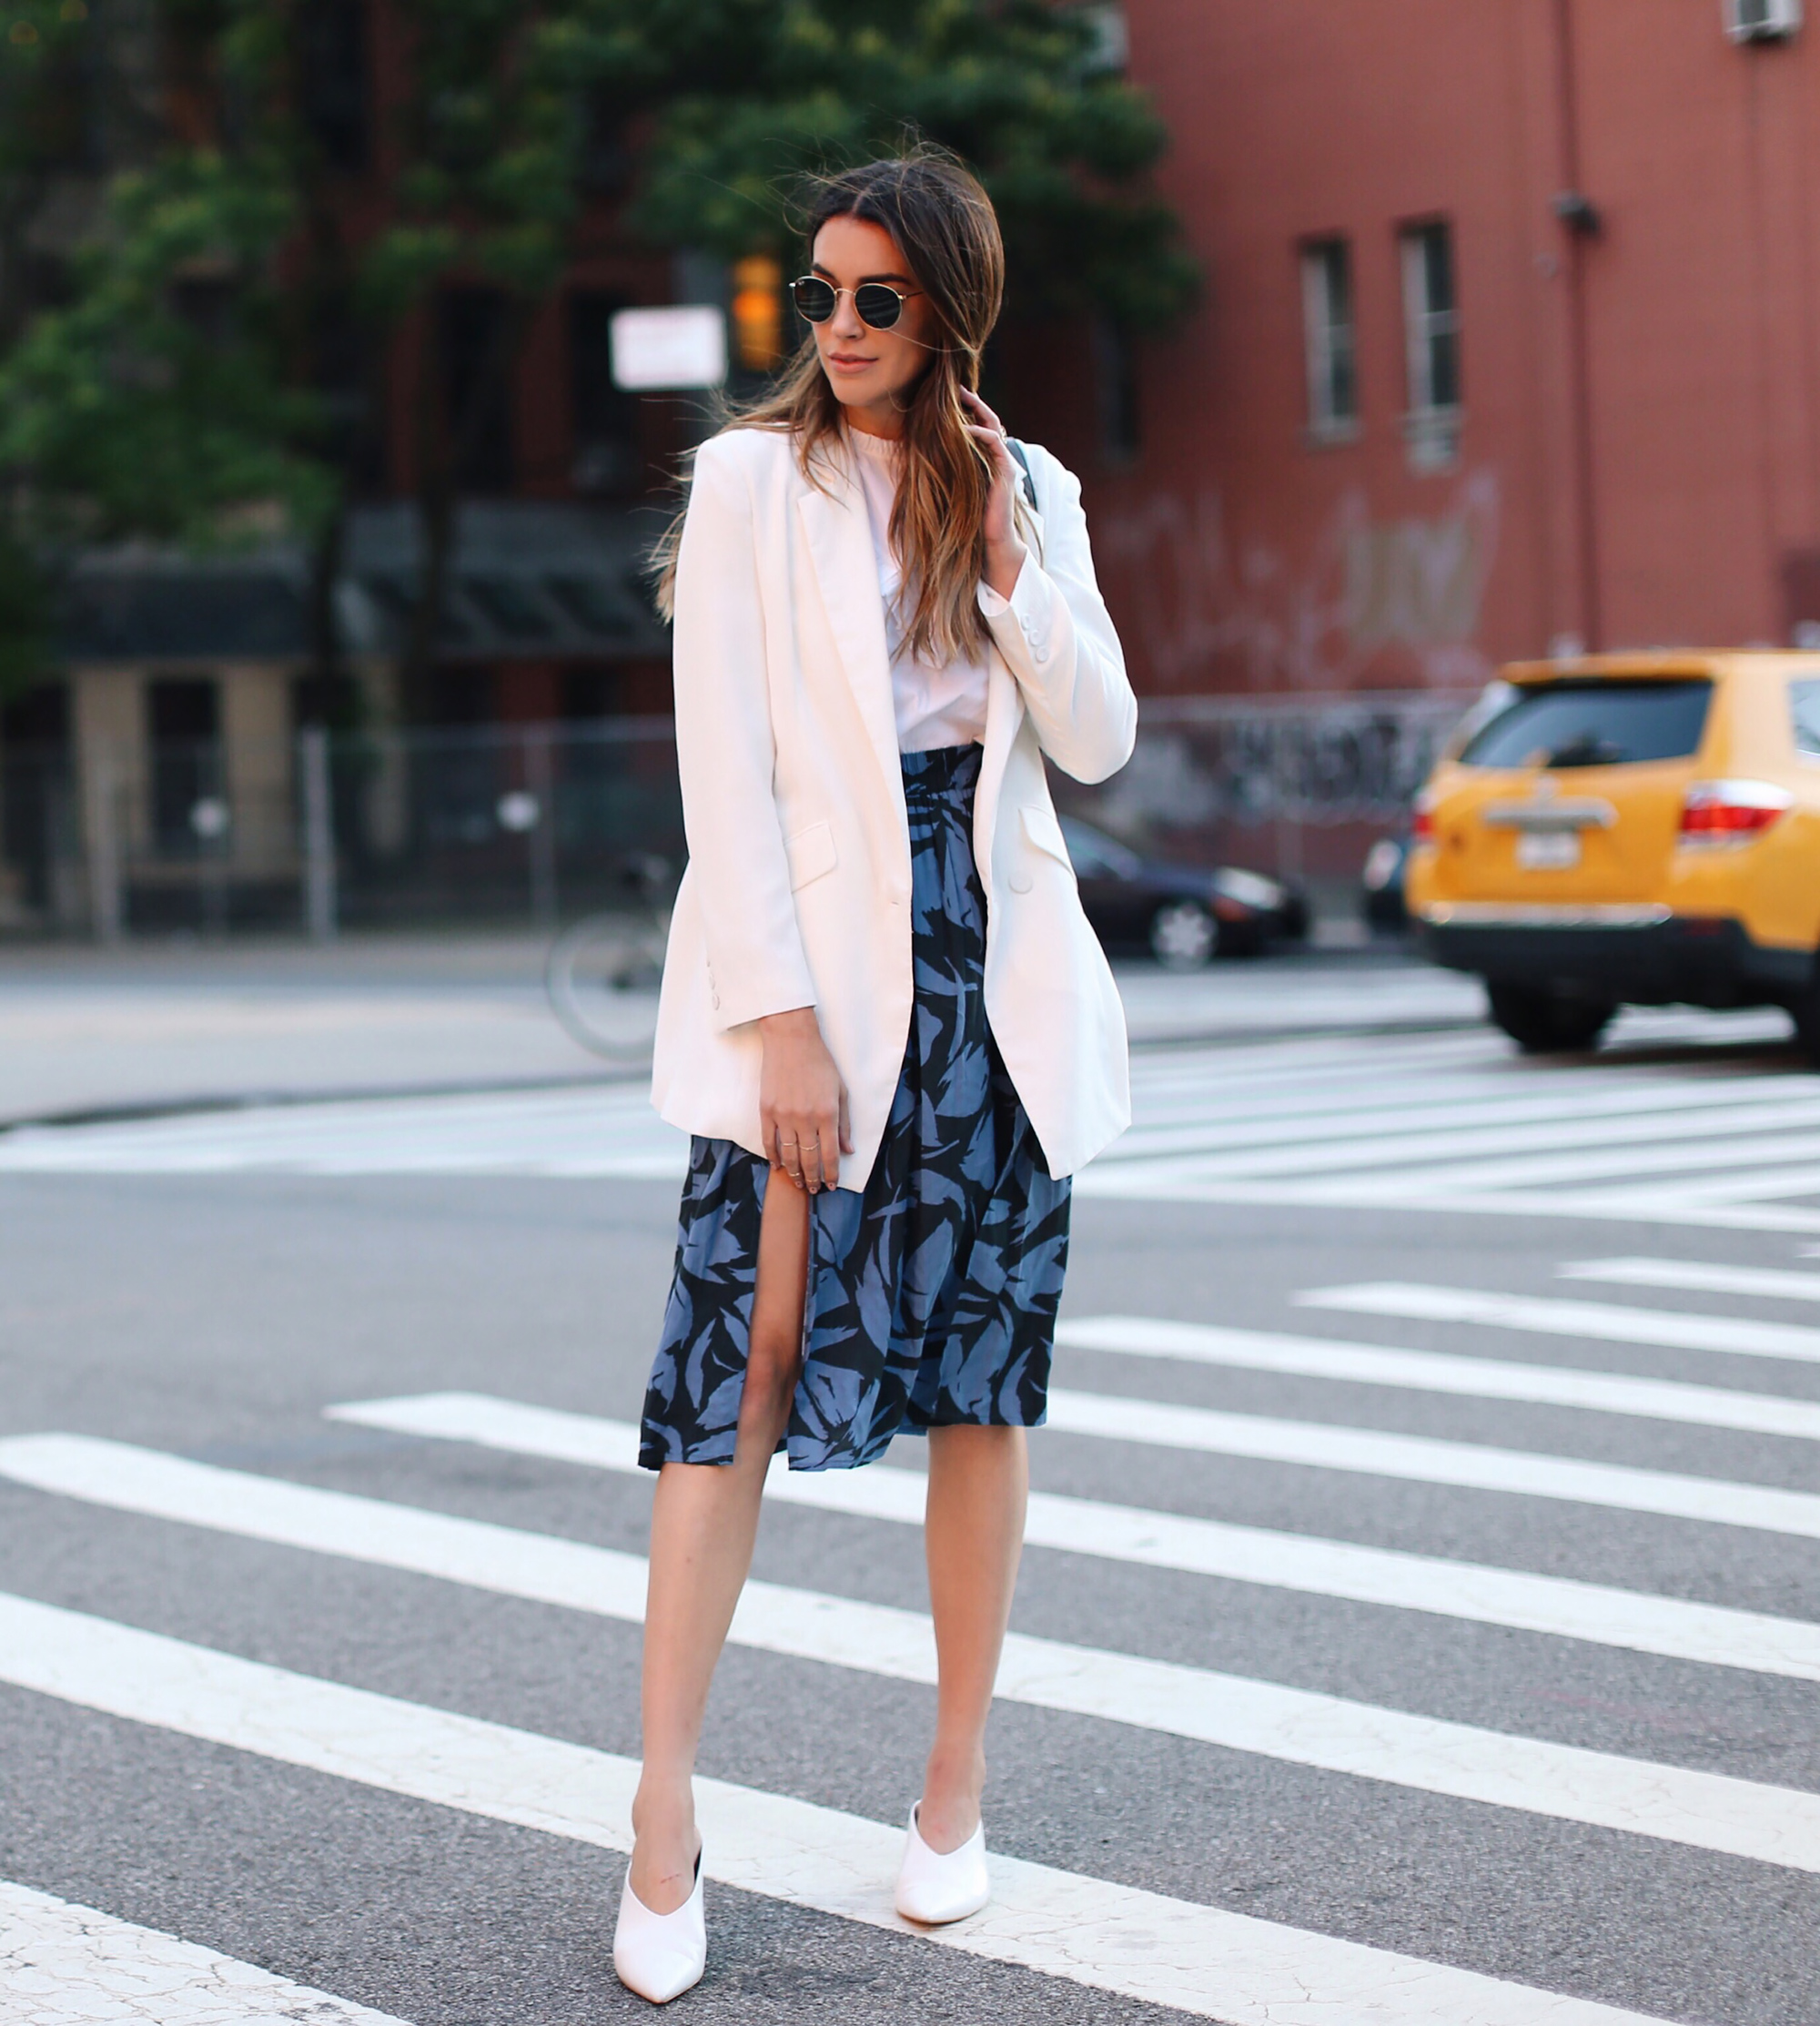 Skirt and Blazer Combo